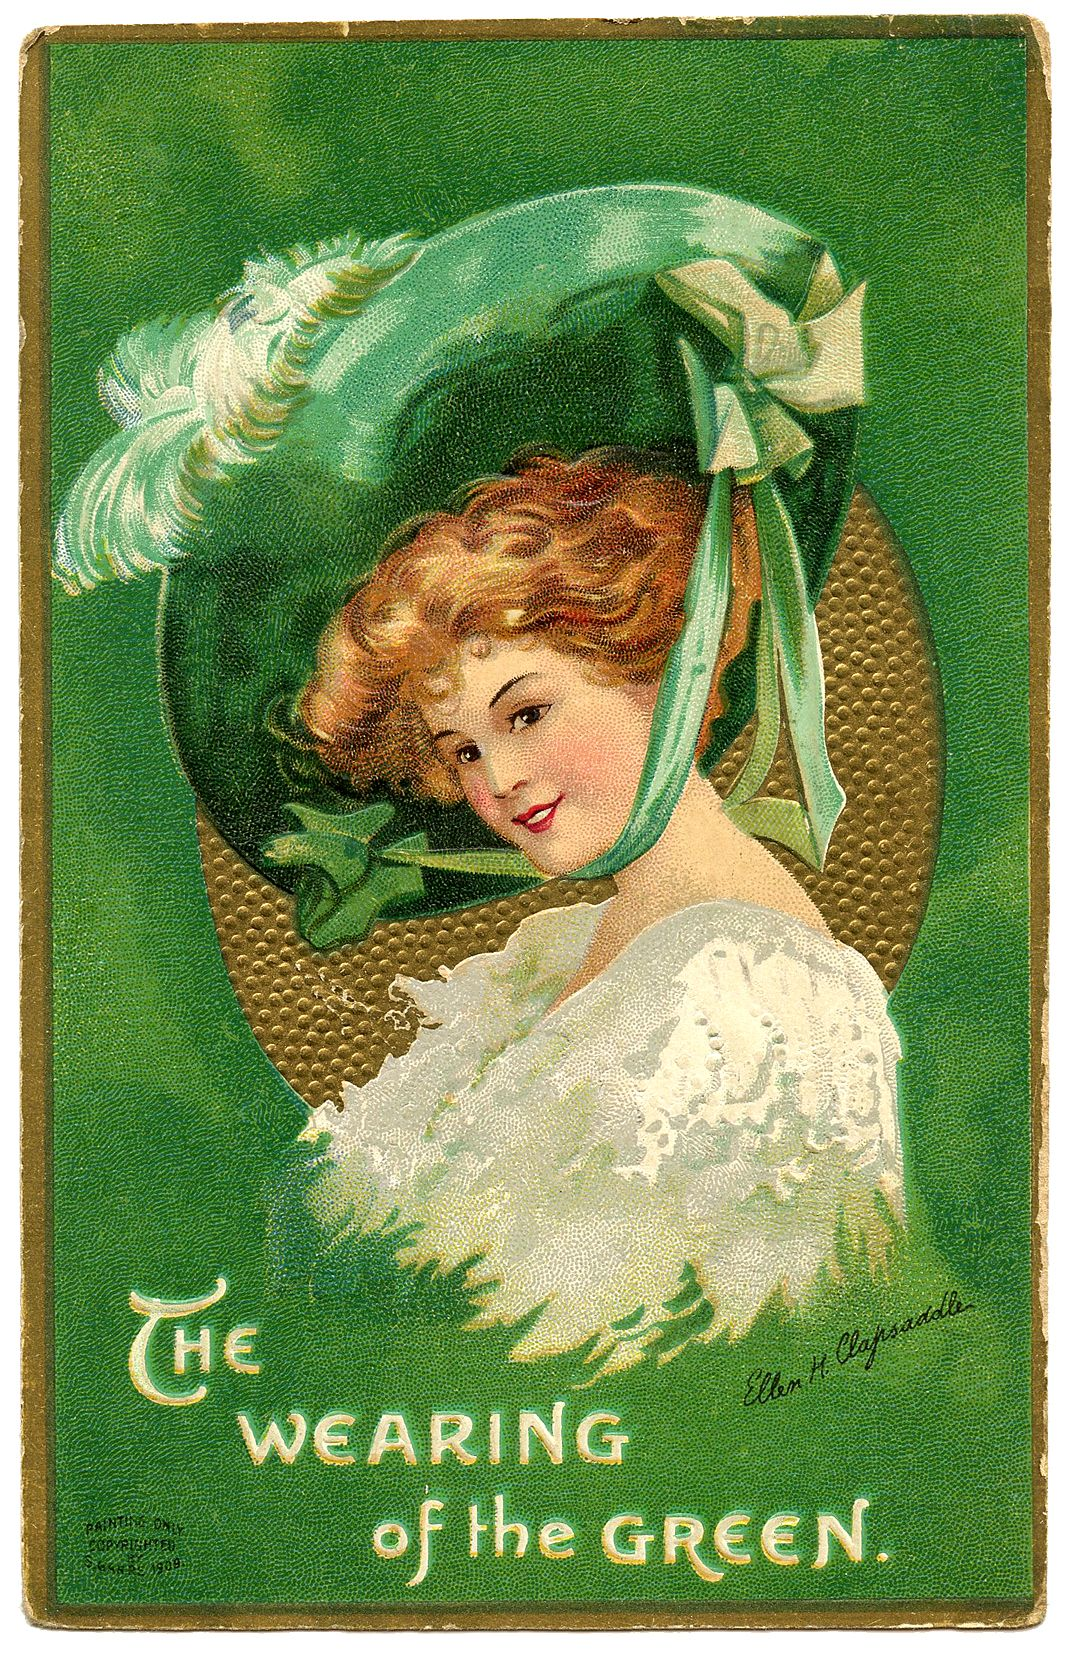 St Patrick's Day Picture - Lady with Large Hat - The Graphics Fairy